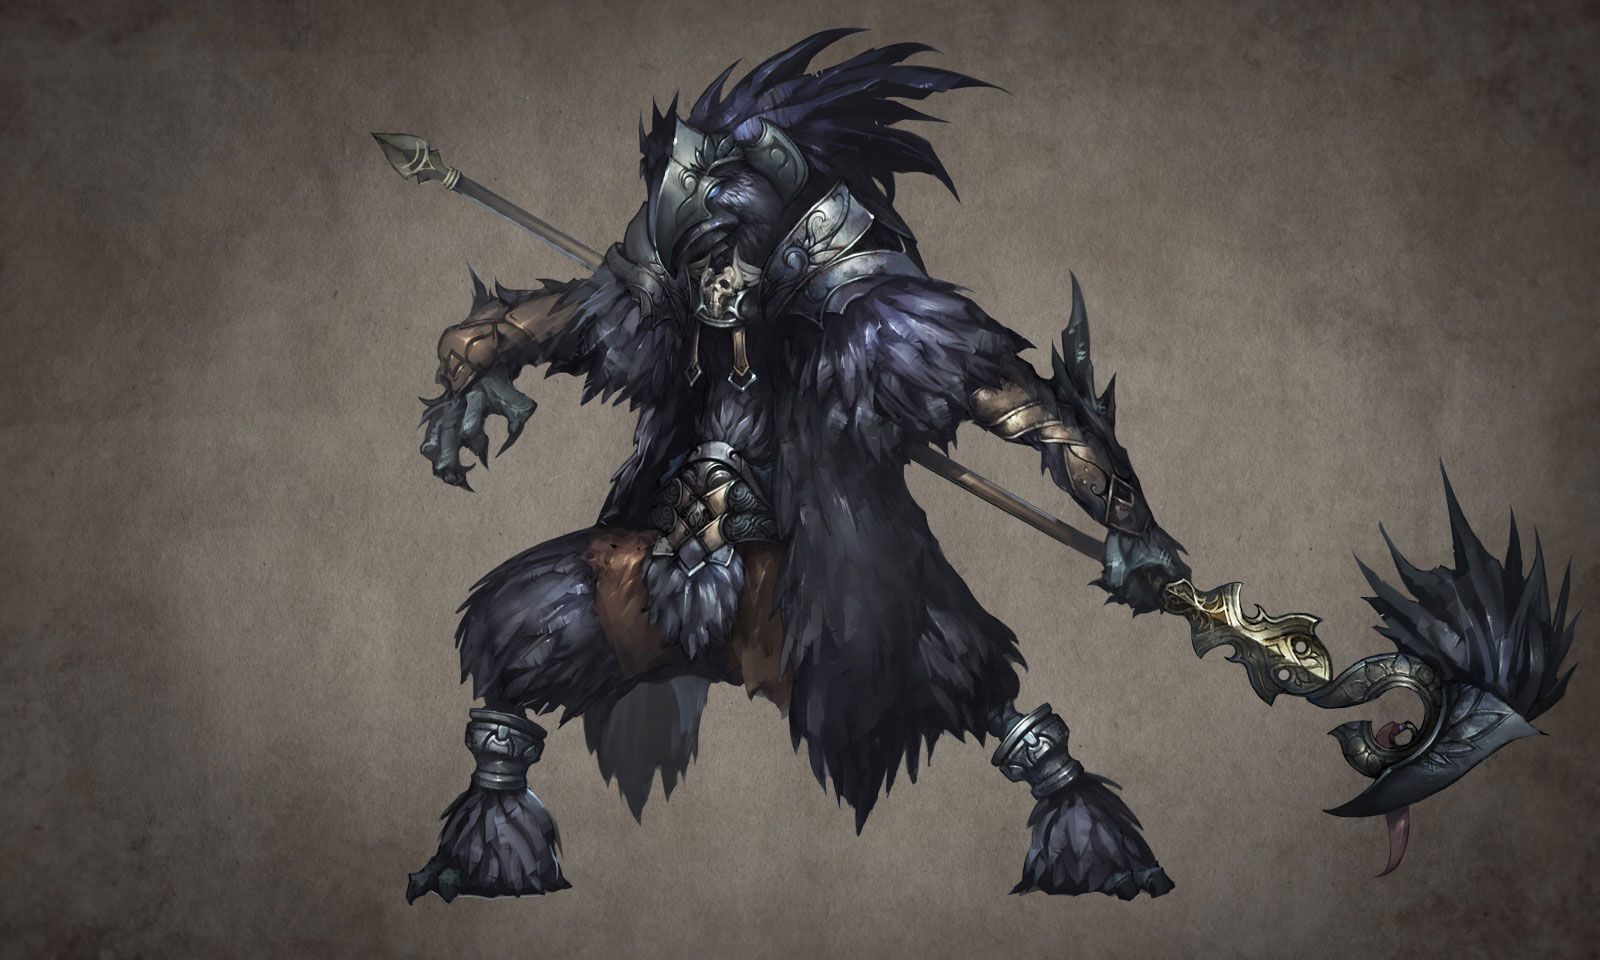 avarice general thread relevant worst xxxvii image this random opening gameplay trailer experience preview online media removed heres tera